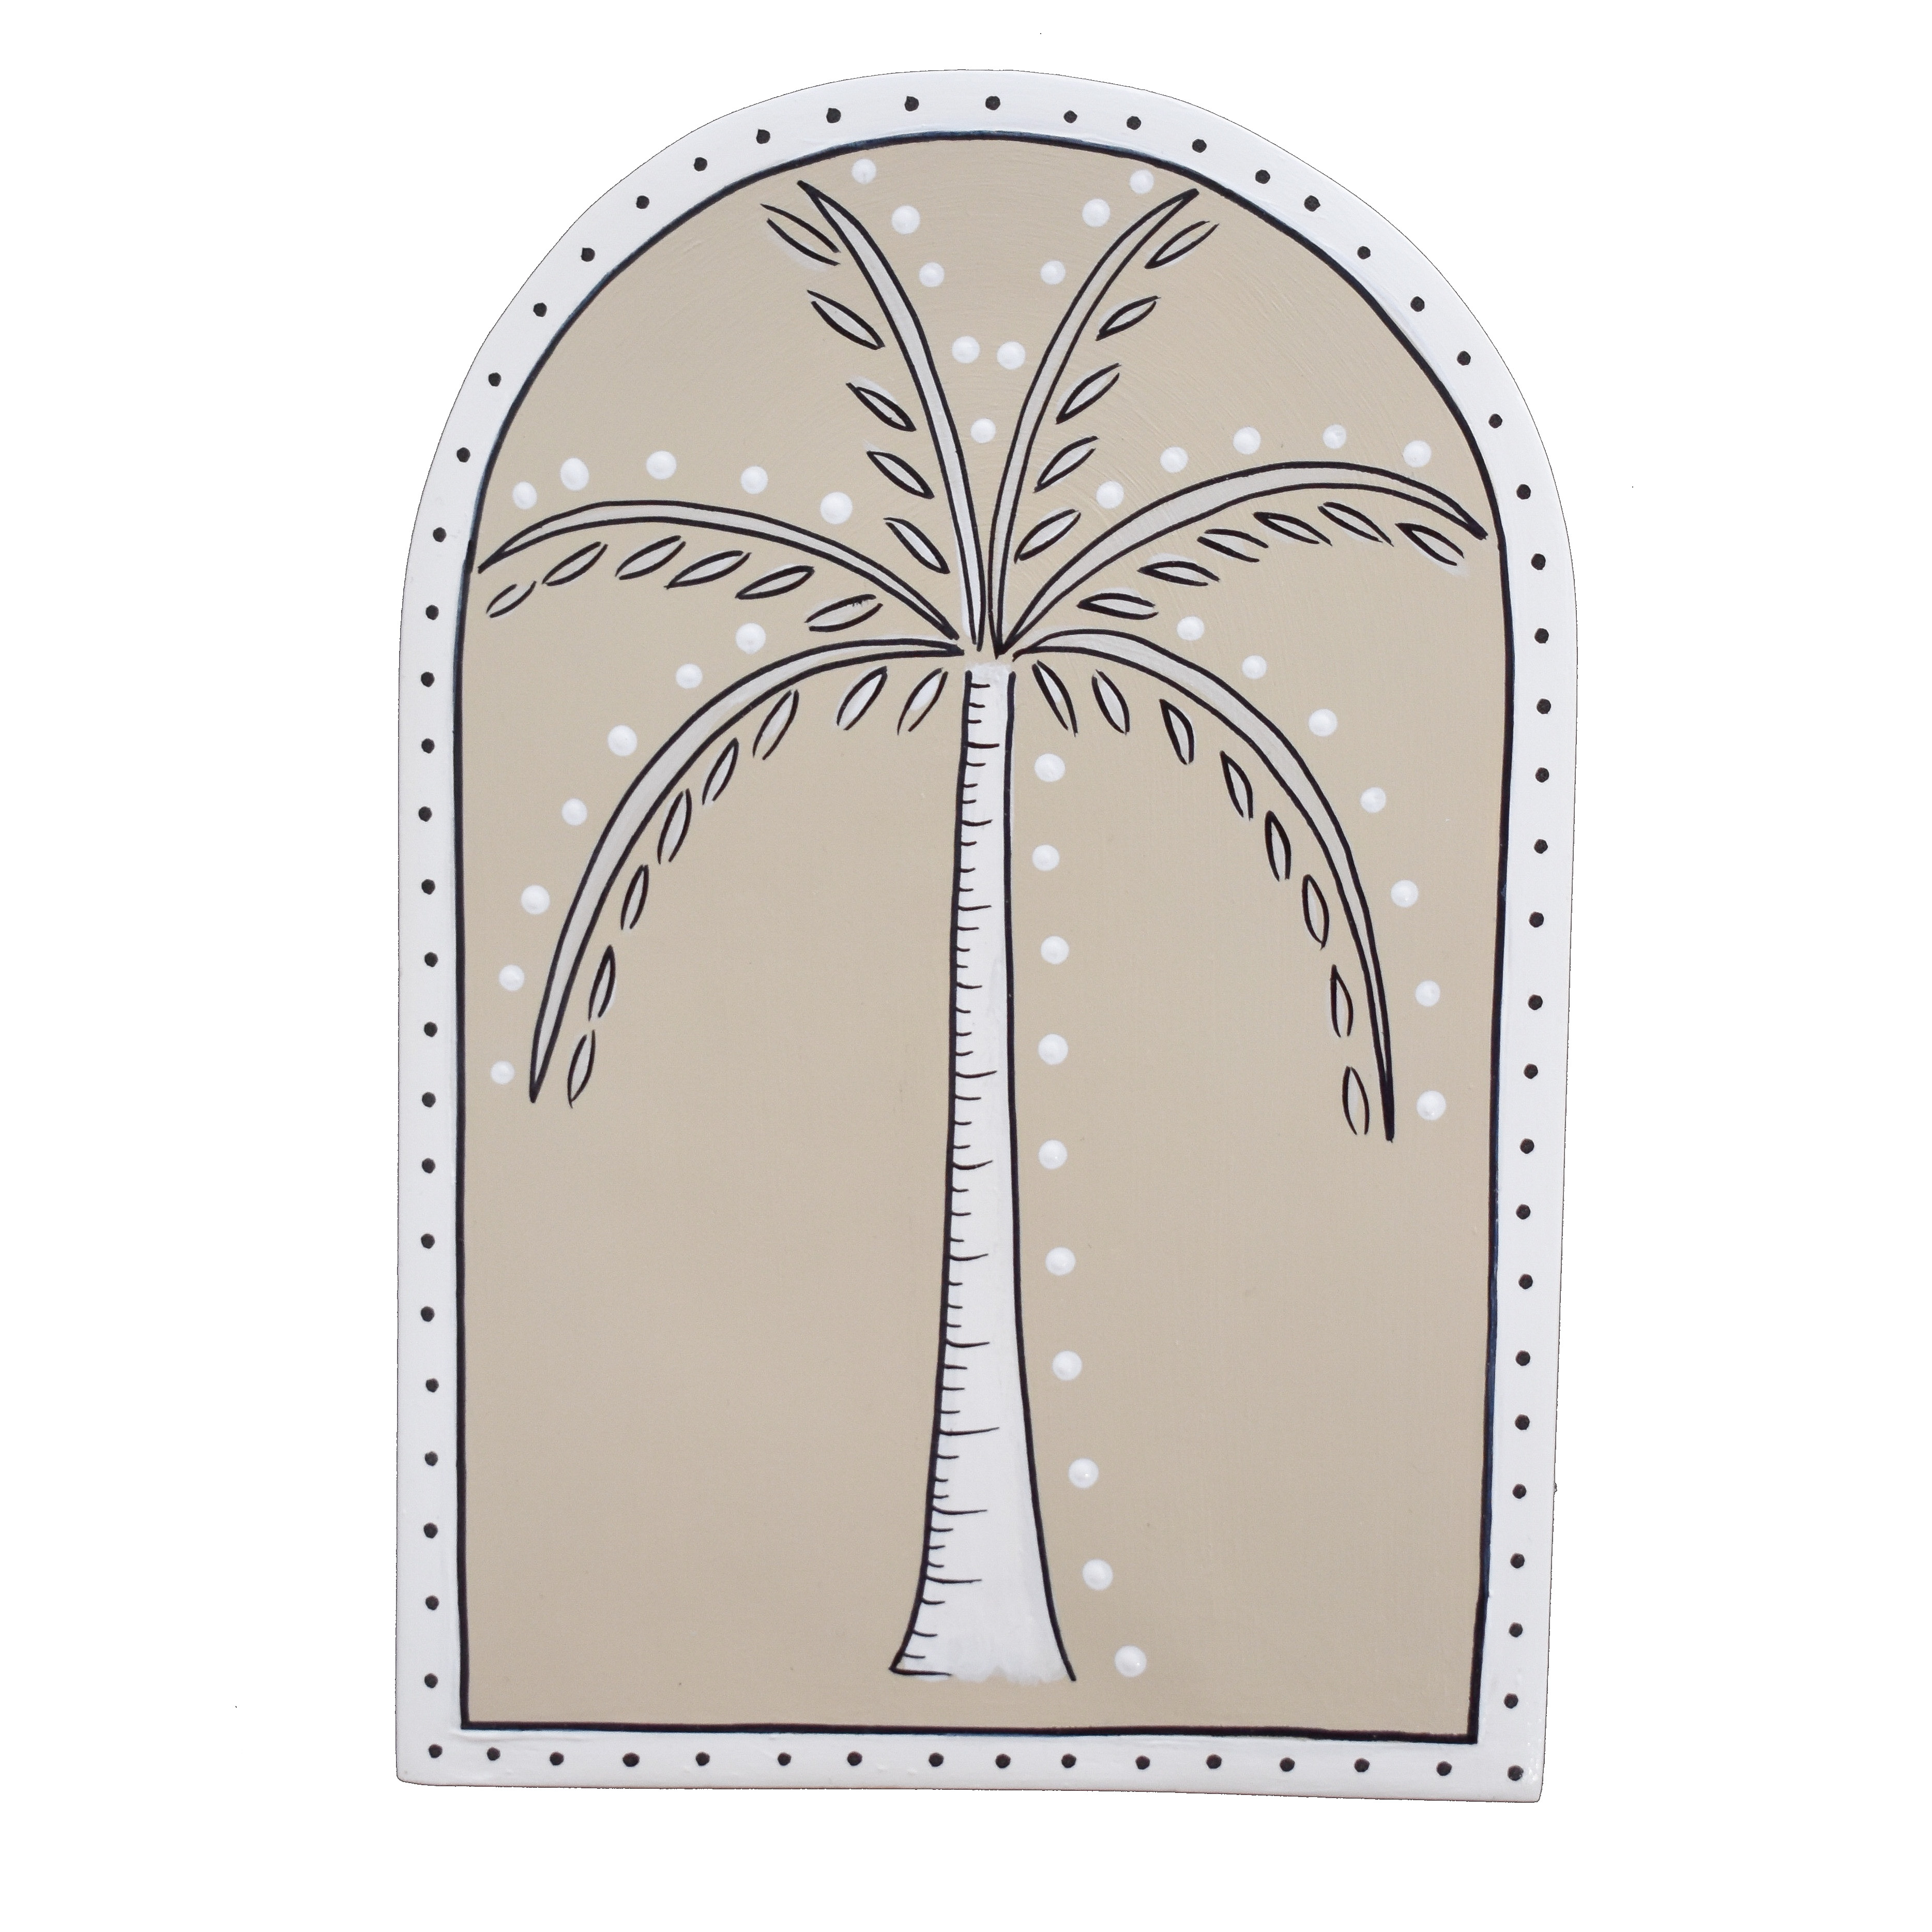 Summer Palm Tree Wall Tile -Large Dusty Olive by My Kind of Bliss, a Wall Hangings & Decor for sale on Style Sourcebook